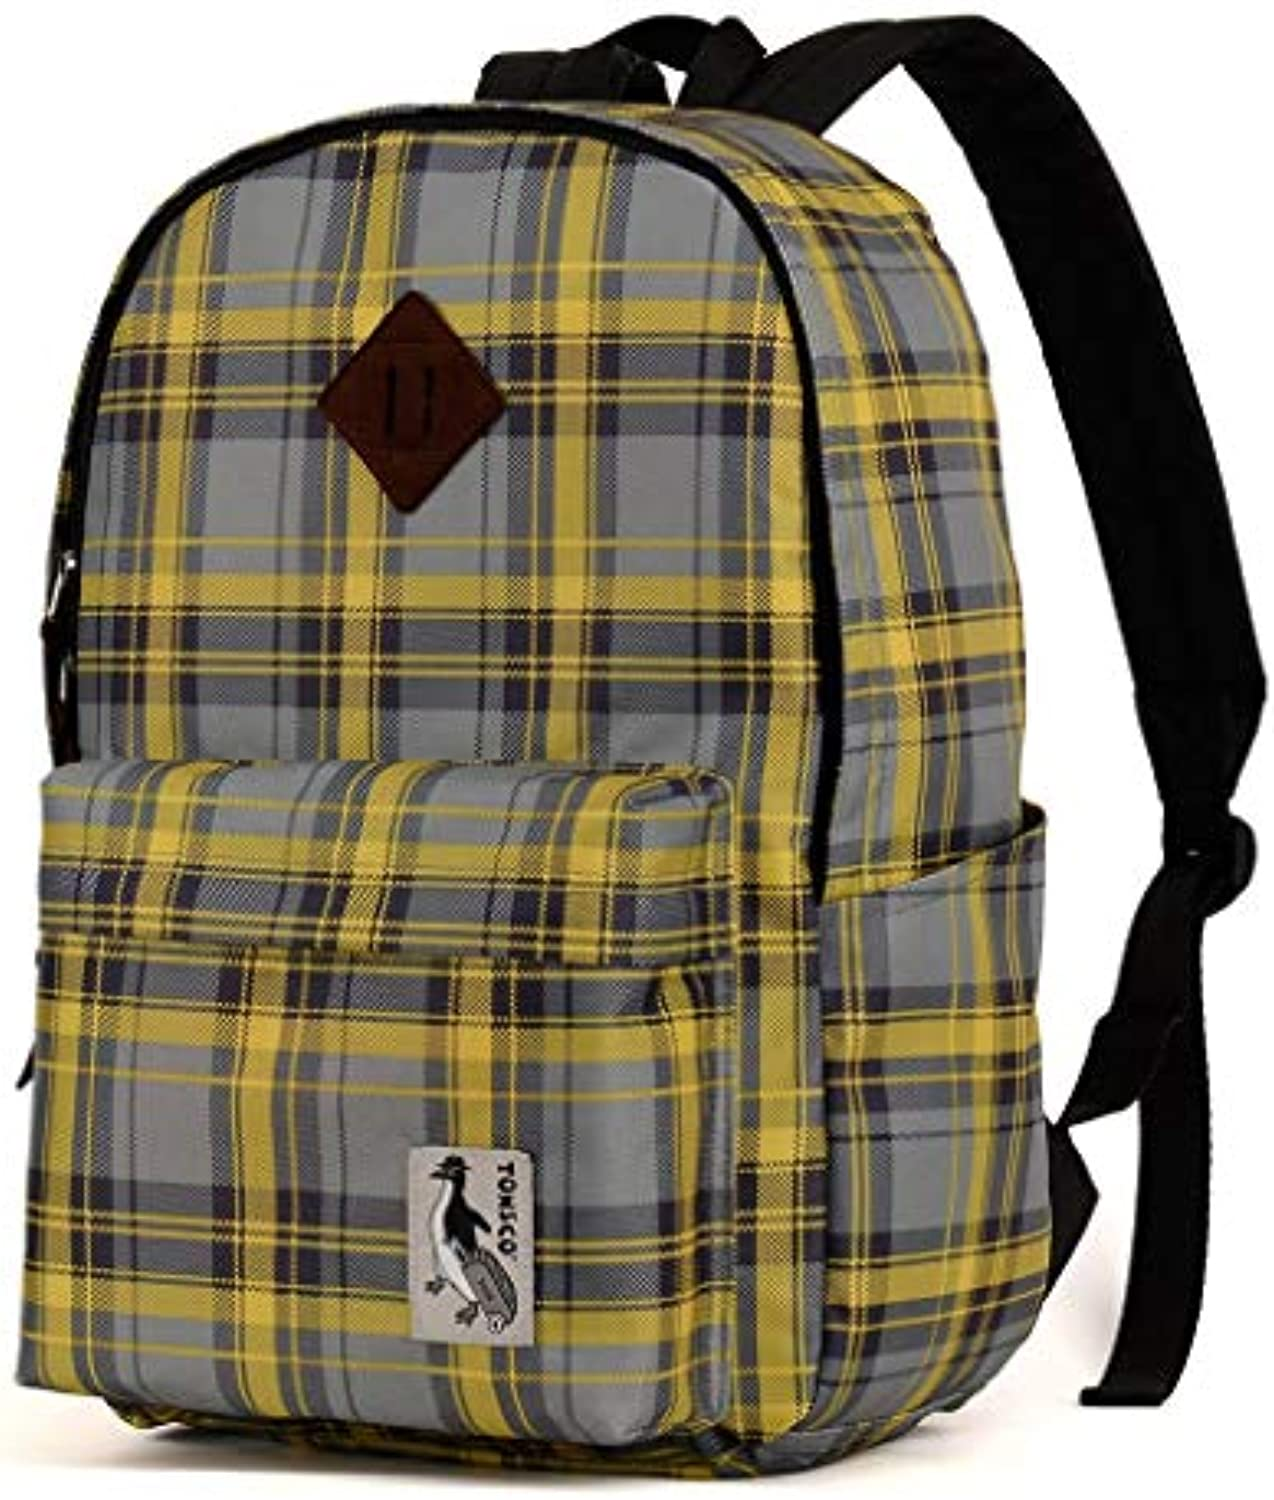 YYBD Backpack Travel bag student bag Outdoor activities Unisex Literary 27.5  14  41.5 4 colors